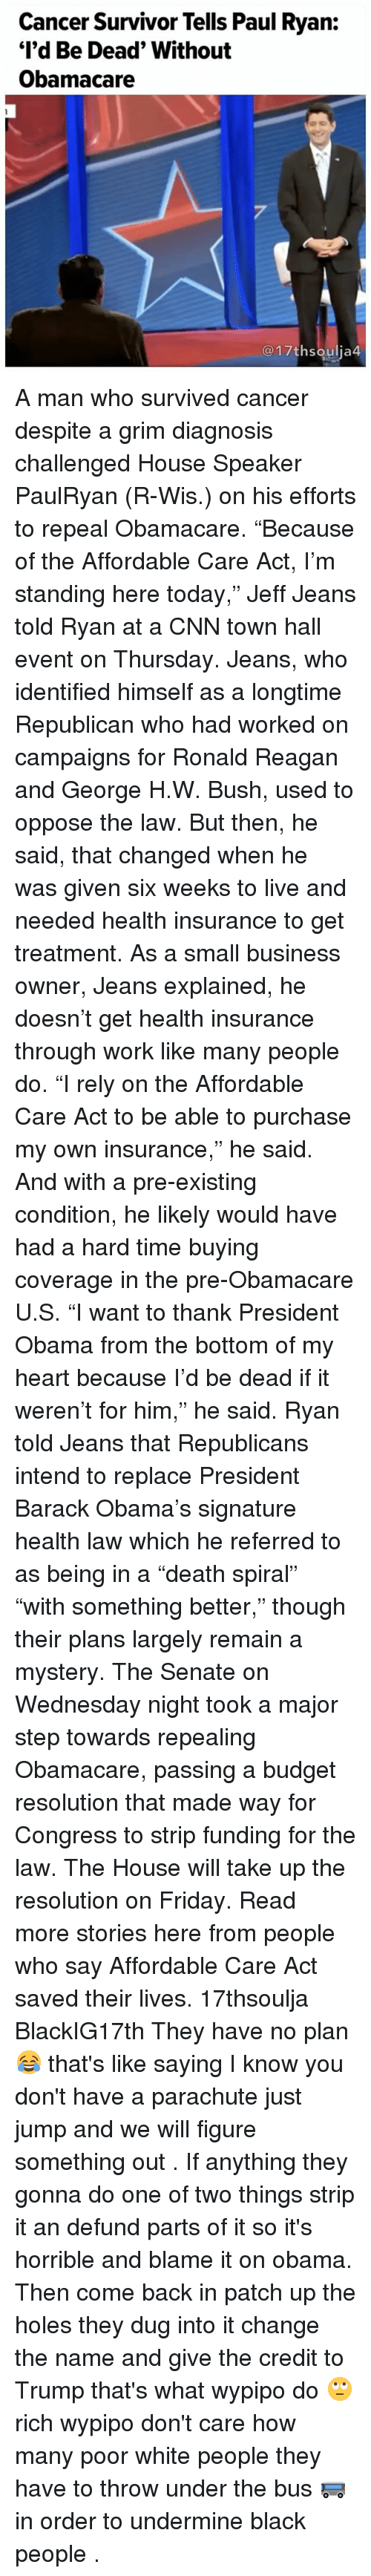 """Pre Existing Condition: Cancer Survivor Tells Paul Ryan:  """"I'd Be Dead"""" Without  Obamacare  17th Soulia4 A man who survived cancer despite a grim diagnosis challenged House Speaker PaulRyan (R-Wis.) on his efforts to repeal Obamacare. """"Because of the Affordable Care Act, I'm standing here today,"""" Jeff Jeans told Ryan at a CNN town hall event on Thursday. Jeans, who identified himself as a longtime Republican who had worked on campaigns for Ronald Reagan and George H.W. Bush, used to oppose the law. But then, he said, that changed when he was given six weeks to live and needed health insurance to get treatment. As a small business owner, Jeans explained, he doesn't get health insurance through work like many people do. """"I rely on the Affordable Care Act to be able to purchase my own insurance,"""" he said. And with a pre-existing condition, he likely would have had a hard time buying coverage in the pre-Obamacare U.S. """"I want to thank President Obama from the bottom of my heart because I'd be dead if it weren't for him,"""" he said. Ryan told Jeans that Republicans intend to replace President Barack Obama's signature health law― which he referred to as being in a """"death spiral""""― """"with something better,"""" though their plans largely remain a mystery. The Senate on Wednesday night took a major step towards repealing Obamacare, passing a budget resolution that made way for Congress to strip funding for the law. The House will take up the resolution on Friday. Read more stories here from people who say Affordable Care Act saved their lives. 17thsoulja BlackIG17th They have no plan 😂 that's like saying I know you don't have a parachute just jump and we will figure something out . If anything they gonna do one of two things strip it an defund parts of it so it's horrible and blame it on obama. Then come back in patch up the holes they dug into it change the name and give the credit to Trump that's what wypipo do 🙄 rich wypipo don't care how many poor white people they have to thro"""